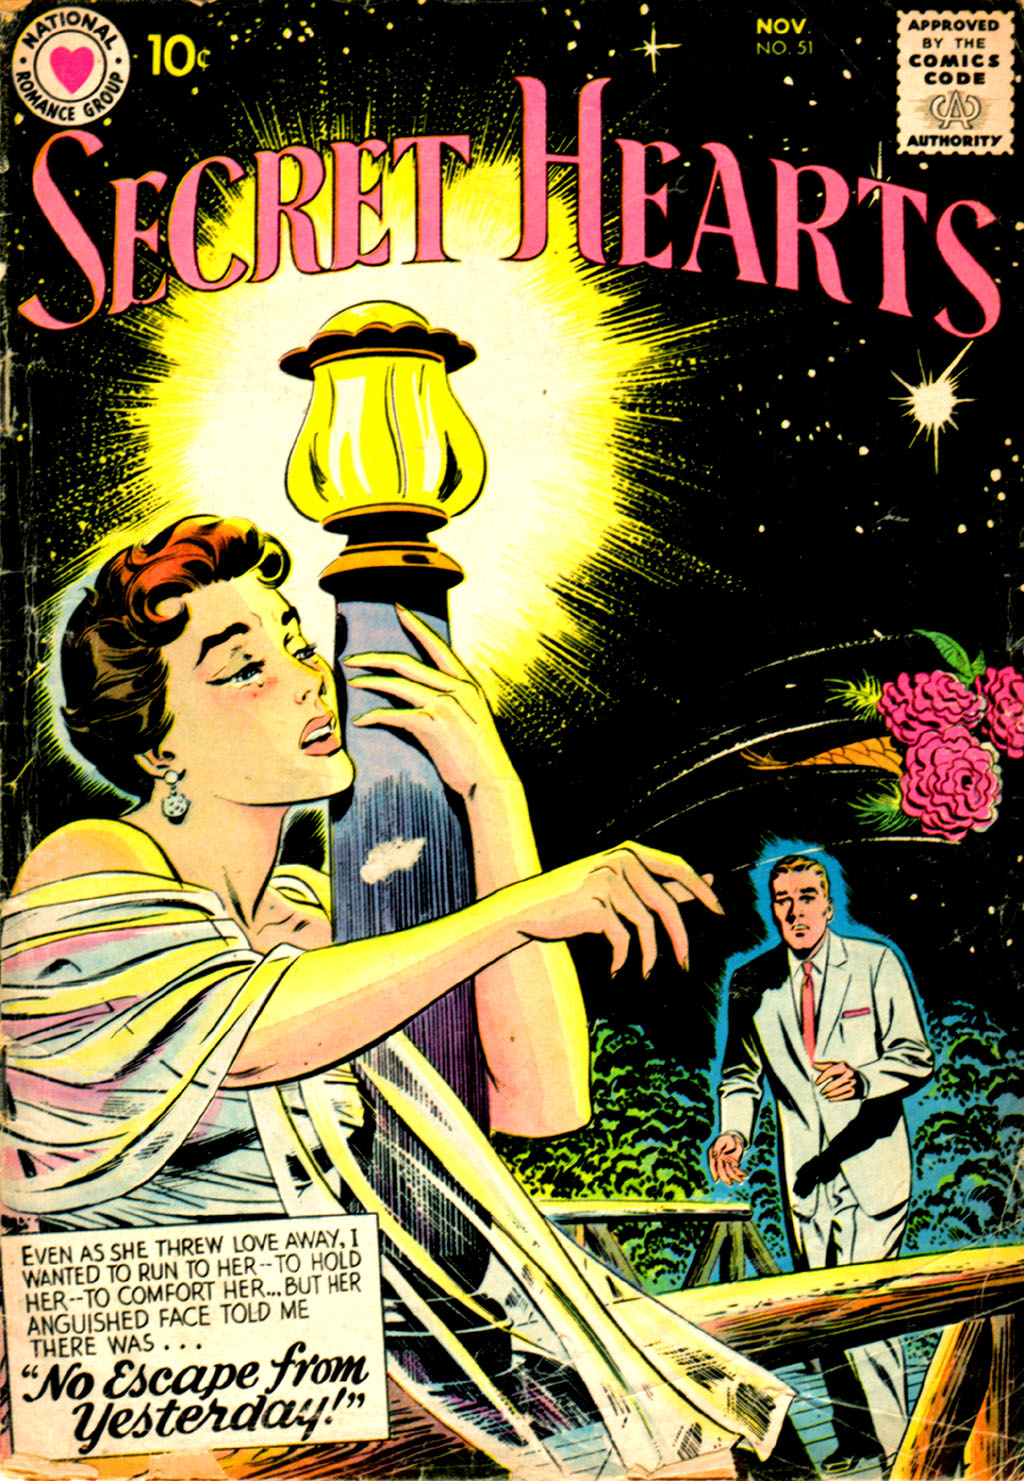 Read online Secret Hearts comic -  Issue #51 - 1